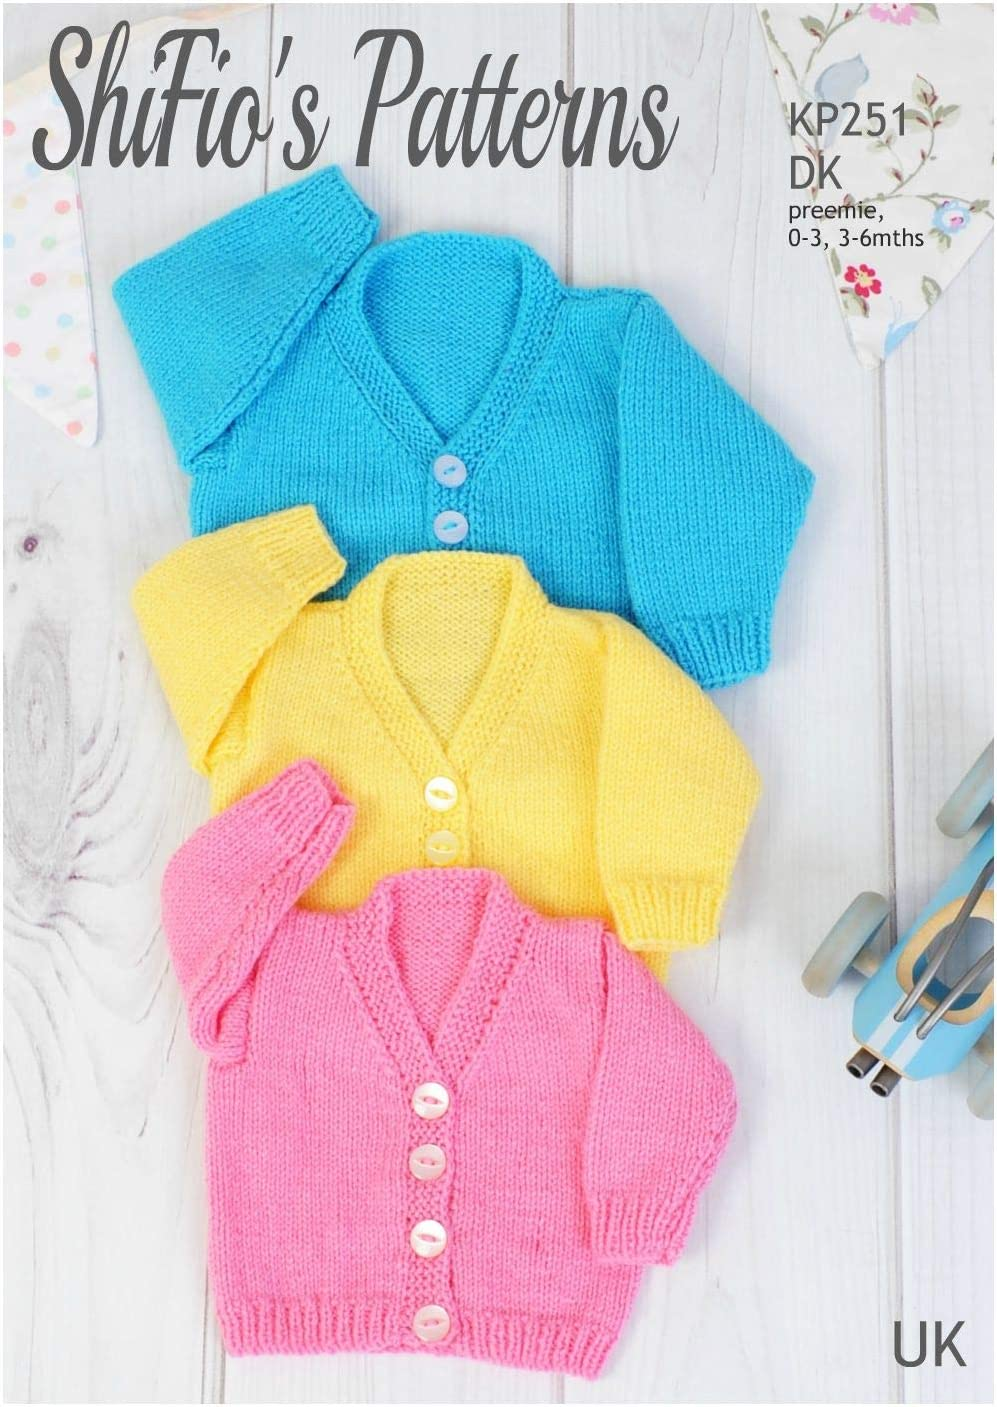 Knitting Pattern for Babies Round Neck Cardigan New-Born - 41cm Baby Knitting Pattern 3-6mths - 51cm Chest 0-3mths - 18 KP590 46cm 20 Double Knitting 16